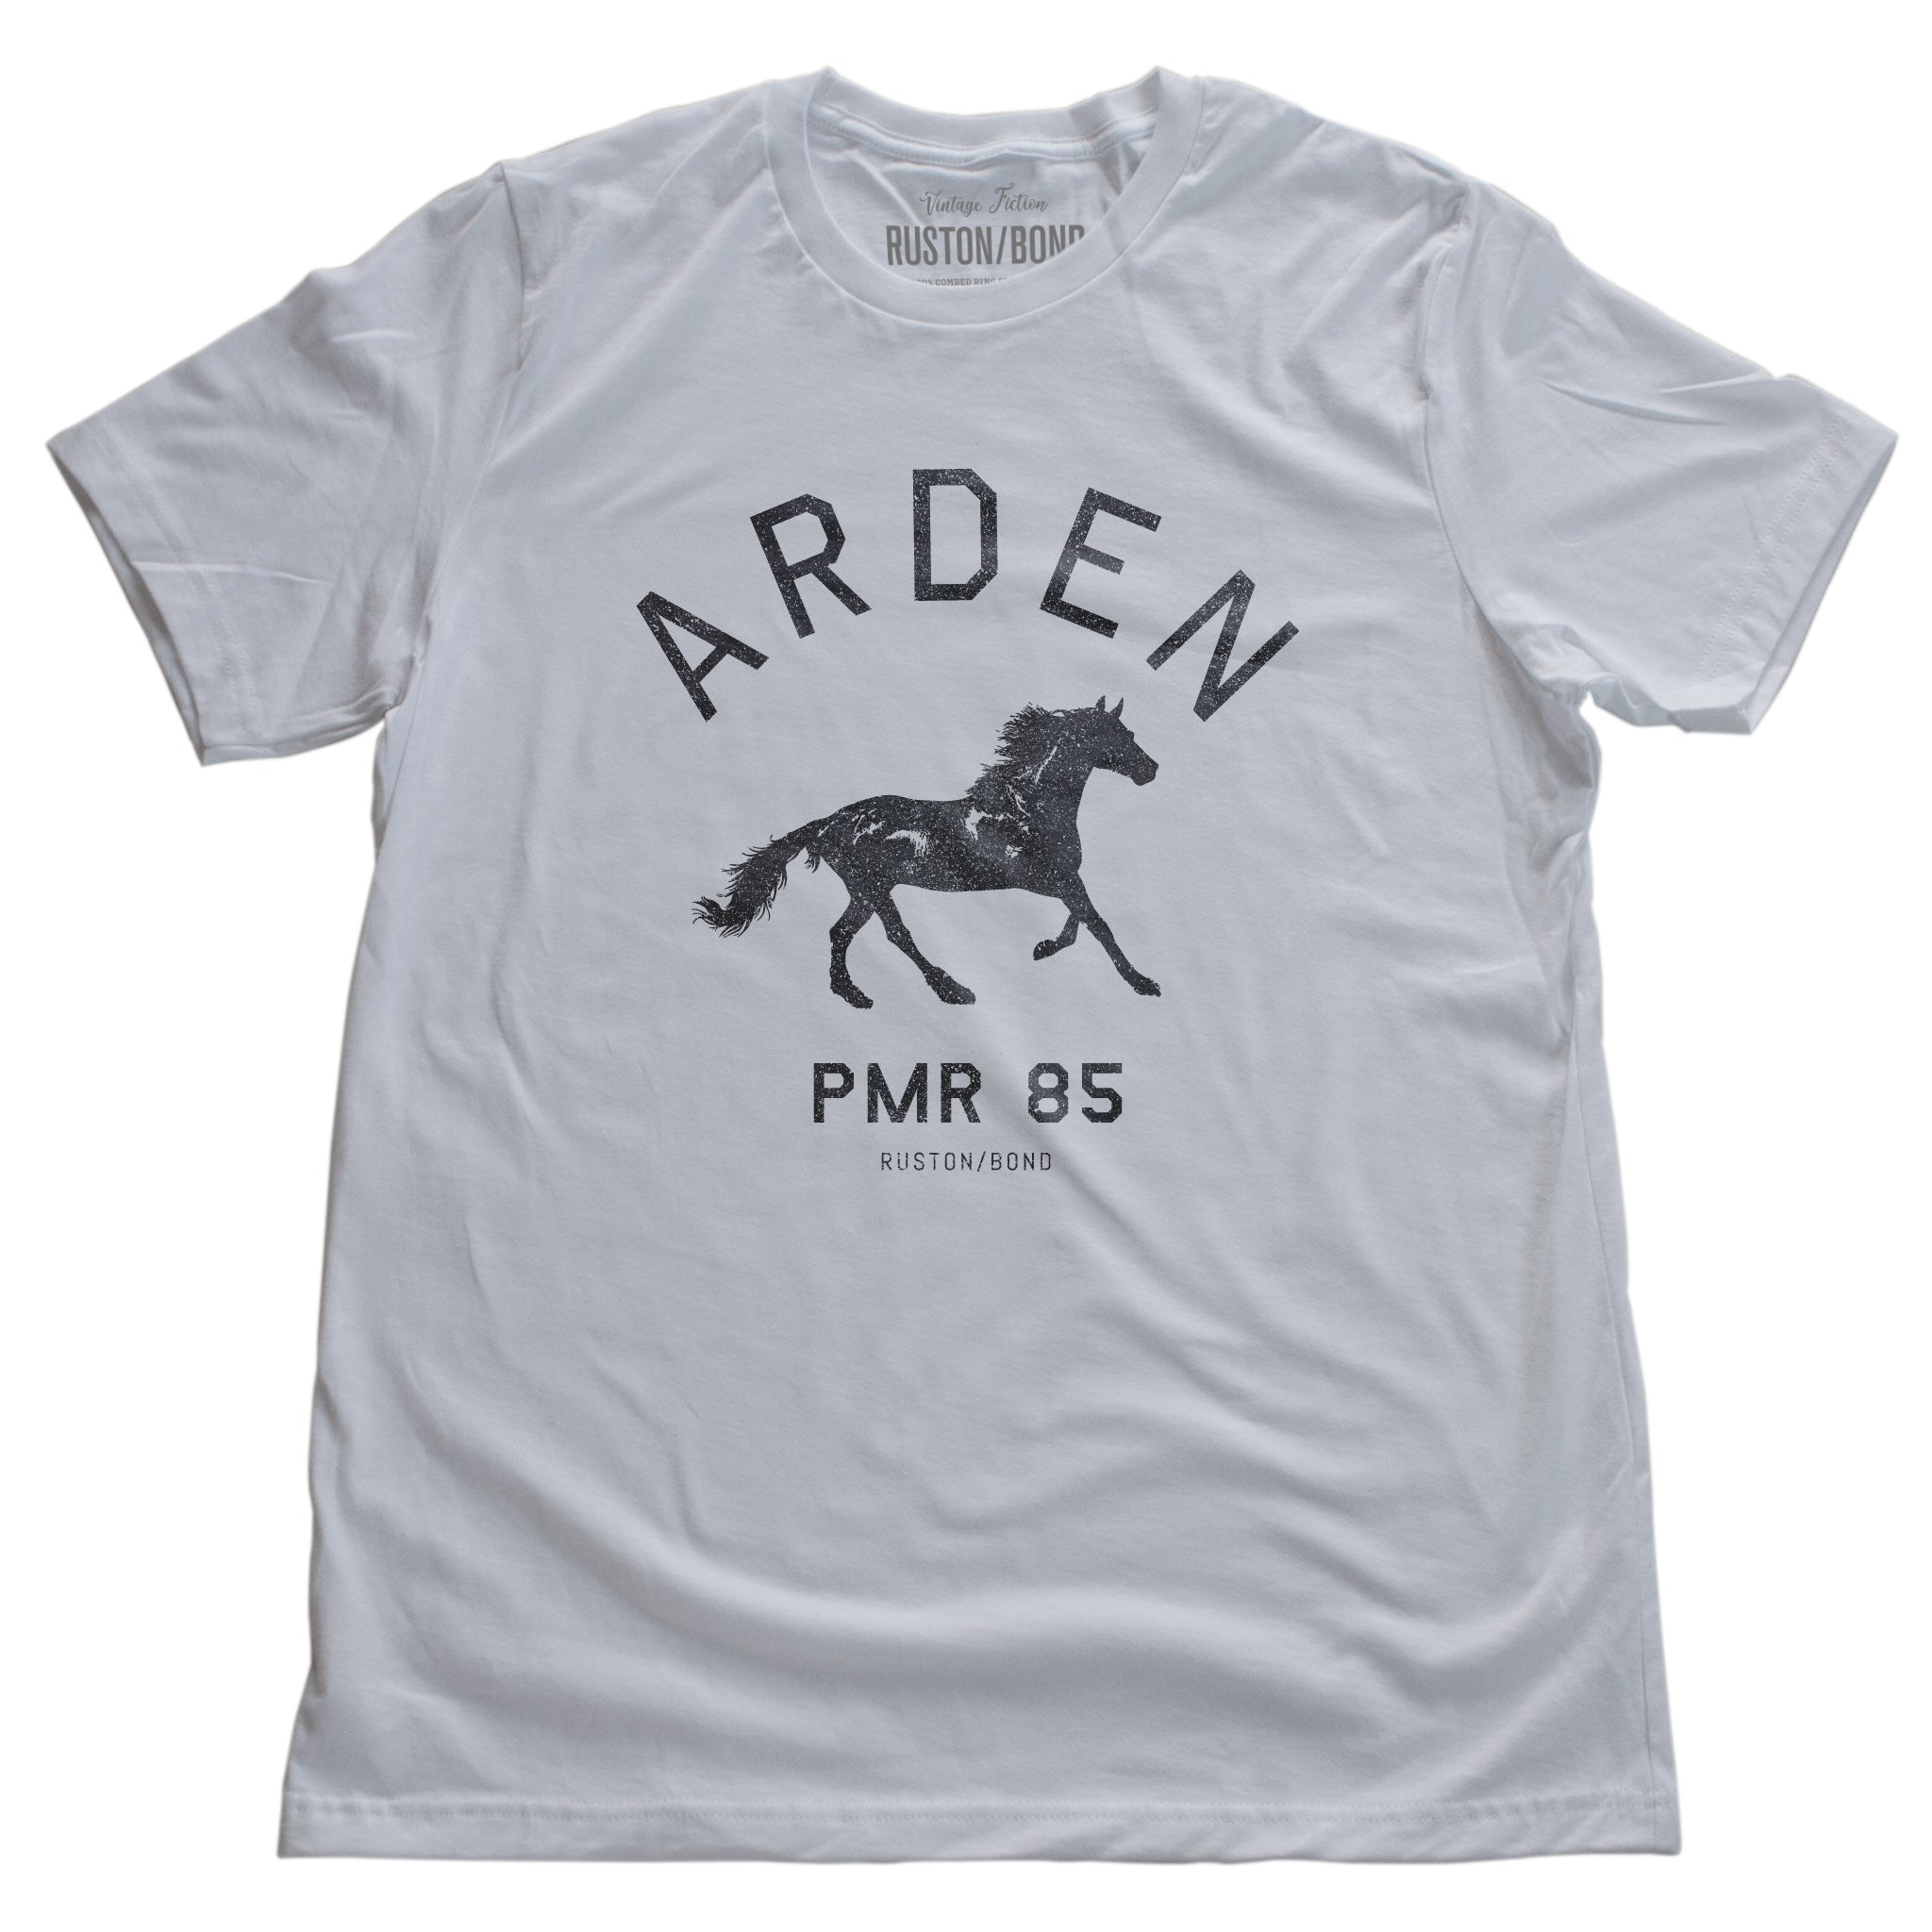 White vintage, retro-inspired fashion t-shirt, with elegant classic typography and a running horse with an equestrian, horse-riding theme. From wolfsaint.net